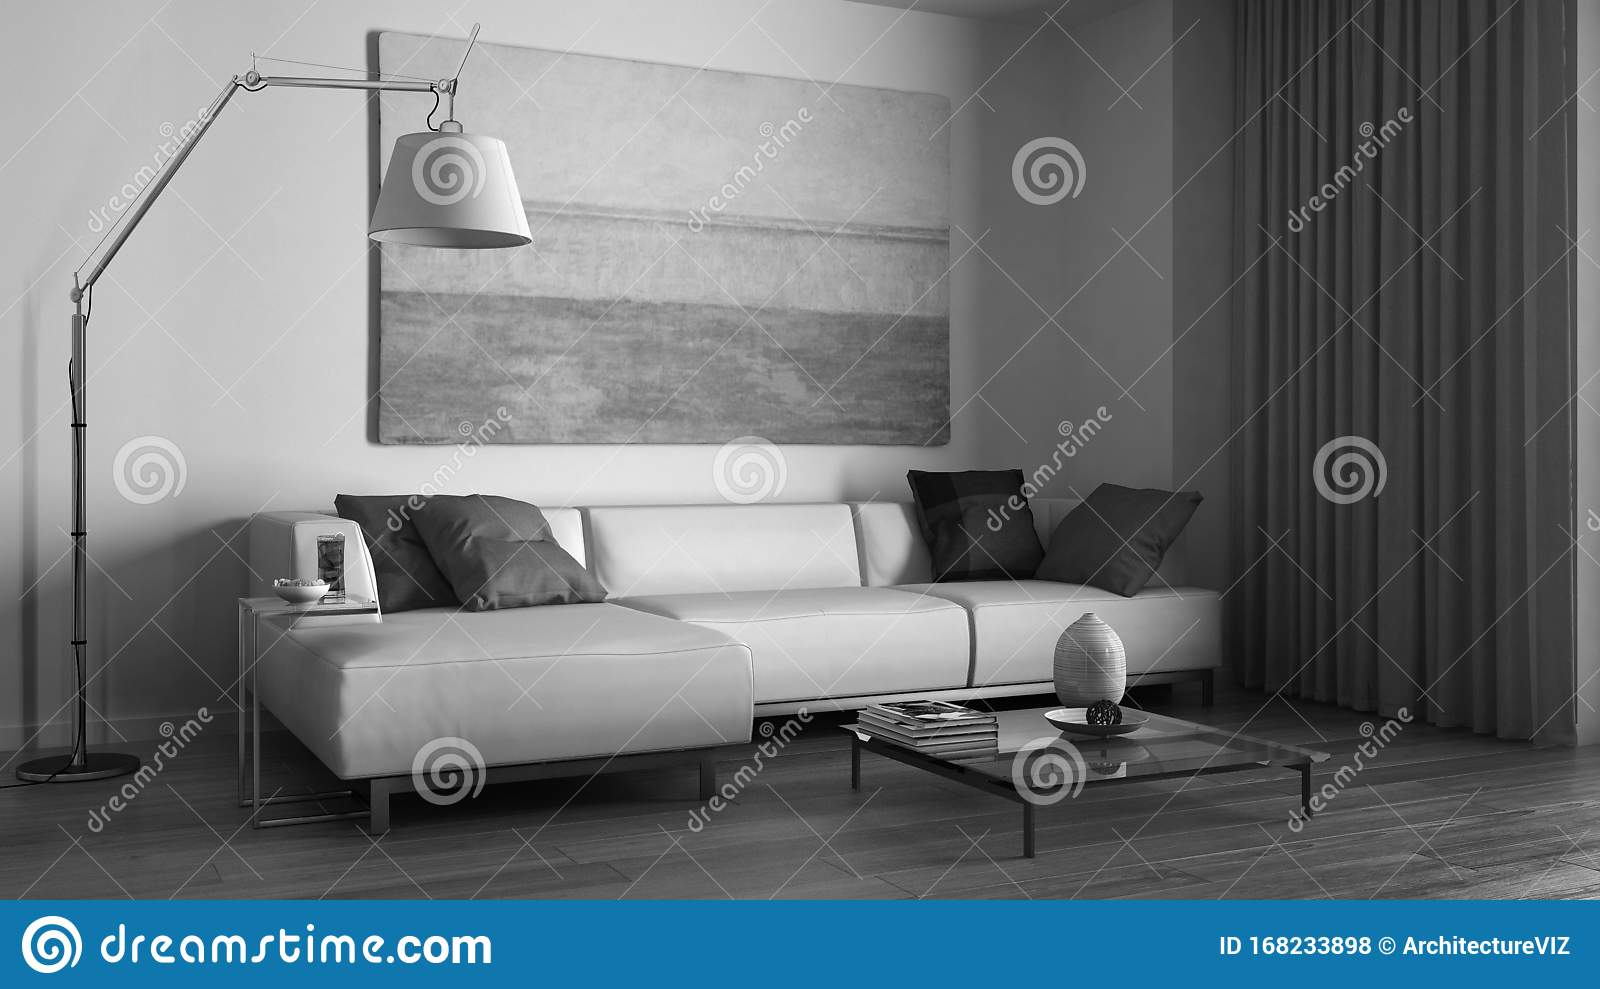 Monochrome Black White Interior Design Modern Minimalist Living Room With Sofa Floor Lamp Coffee Table And Curtains Stock Illustration Illustration Of Apartment Couch 168233898